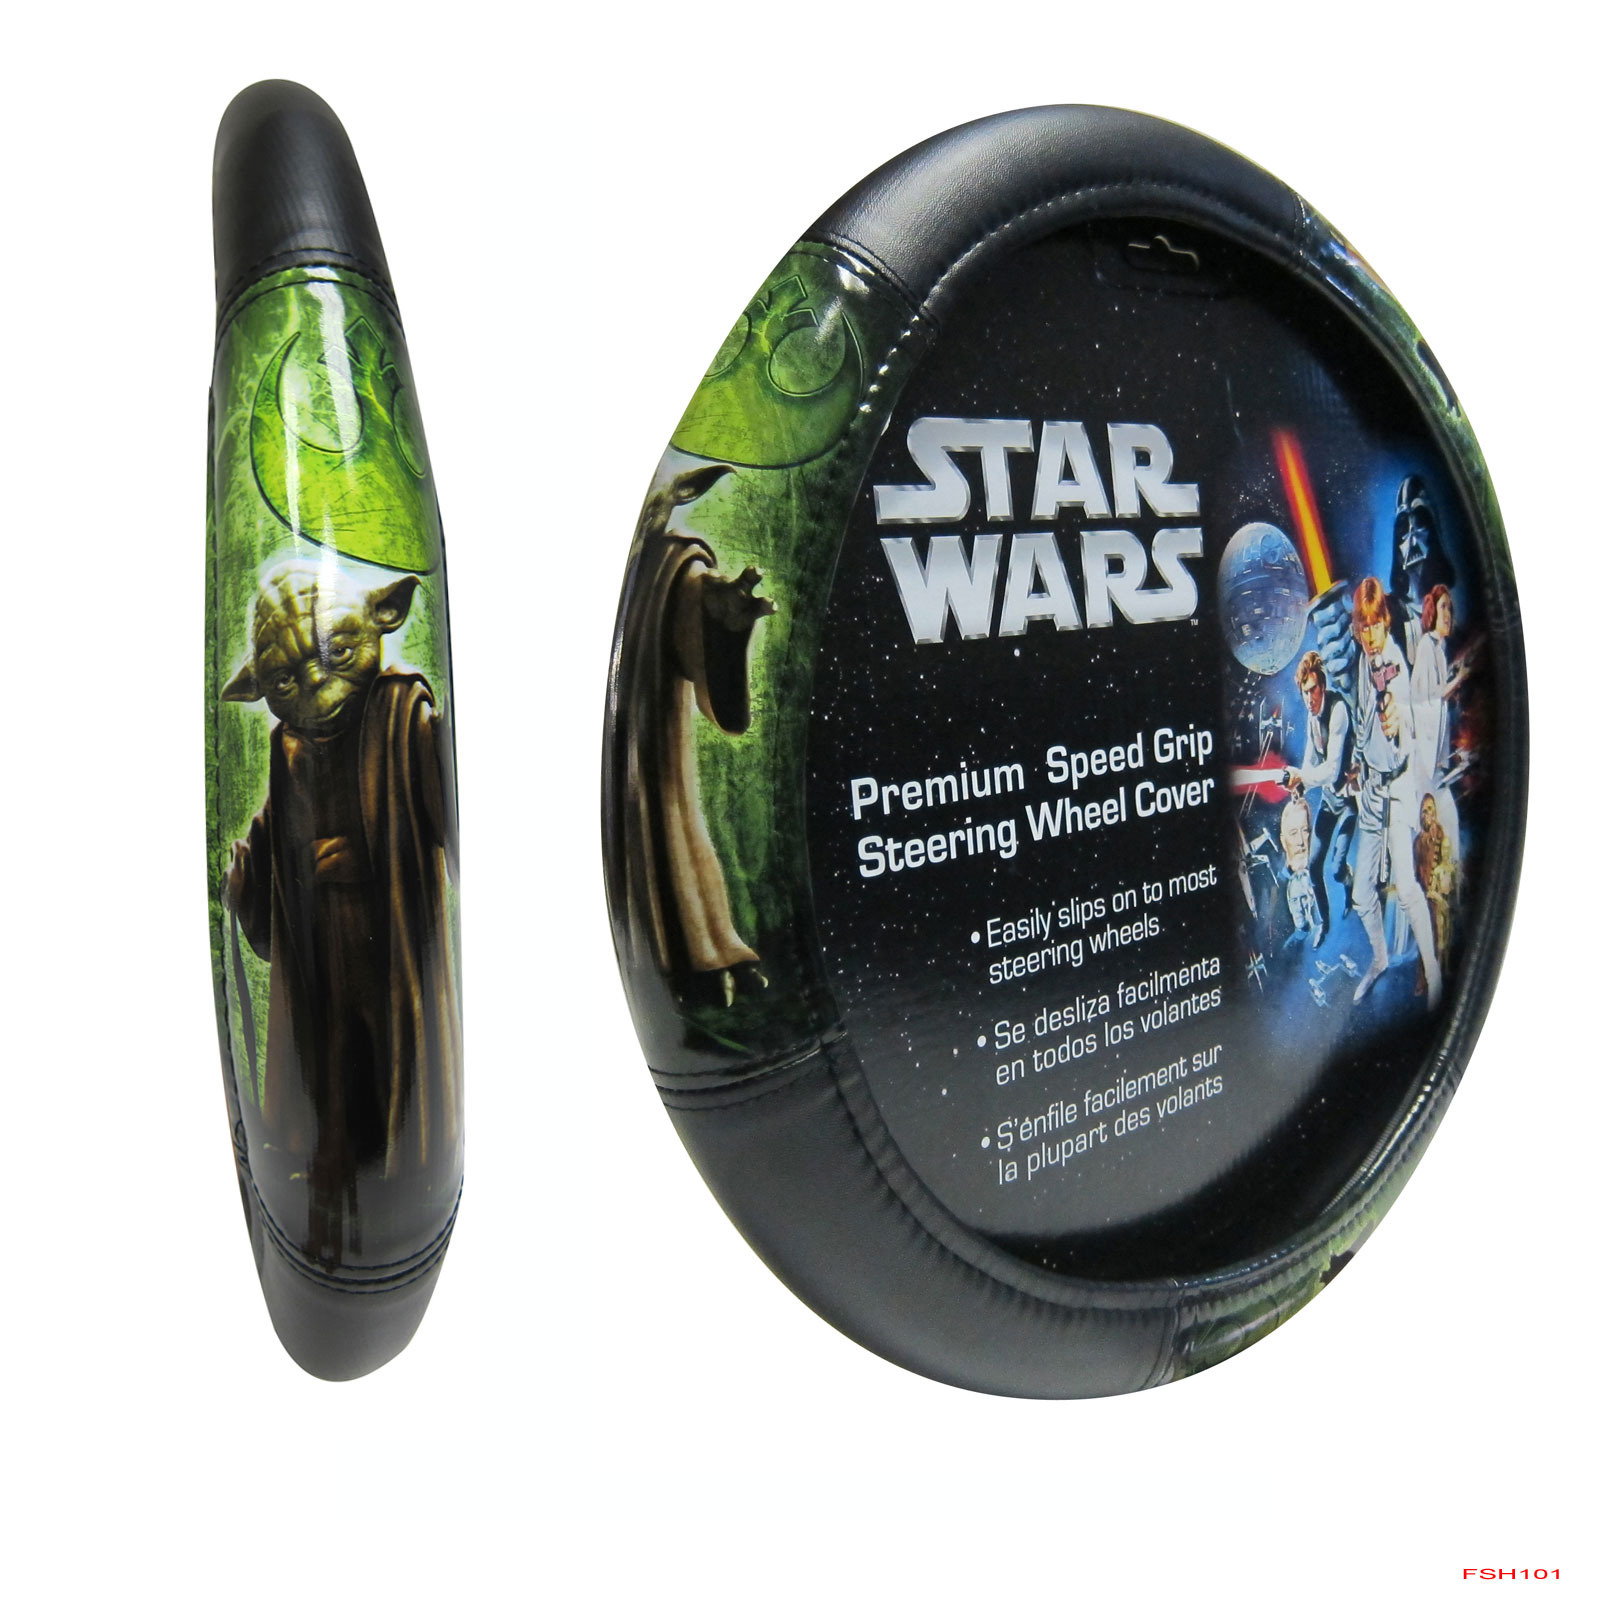 New Star Wars Yoda Synthetic Leather Car Truck Speed Grip